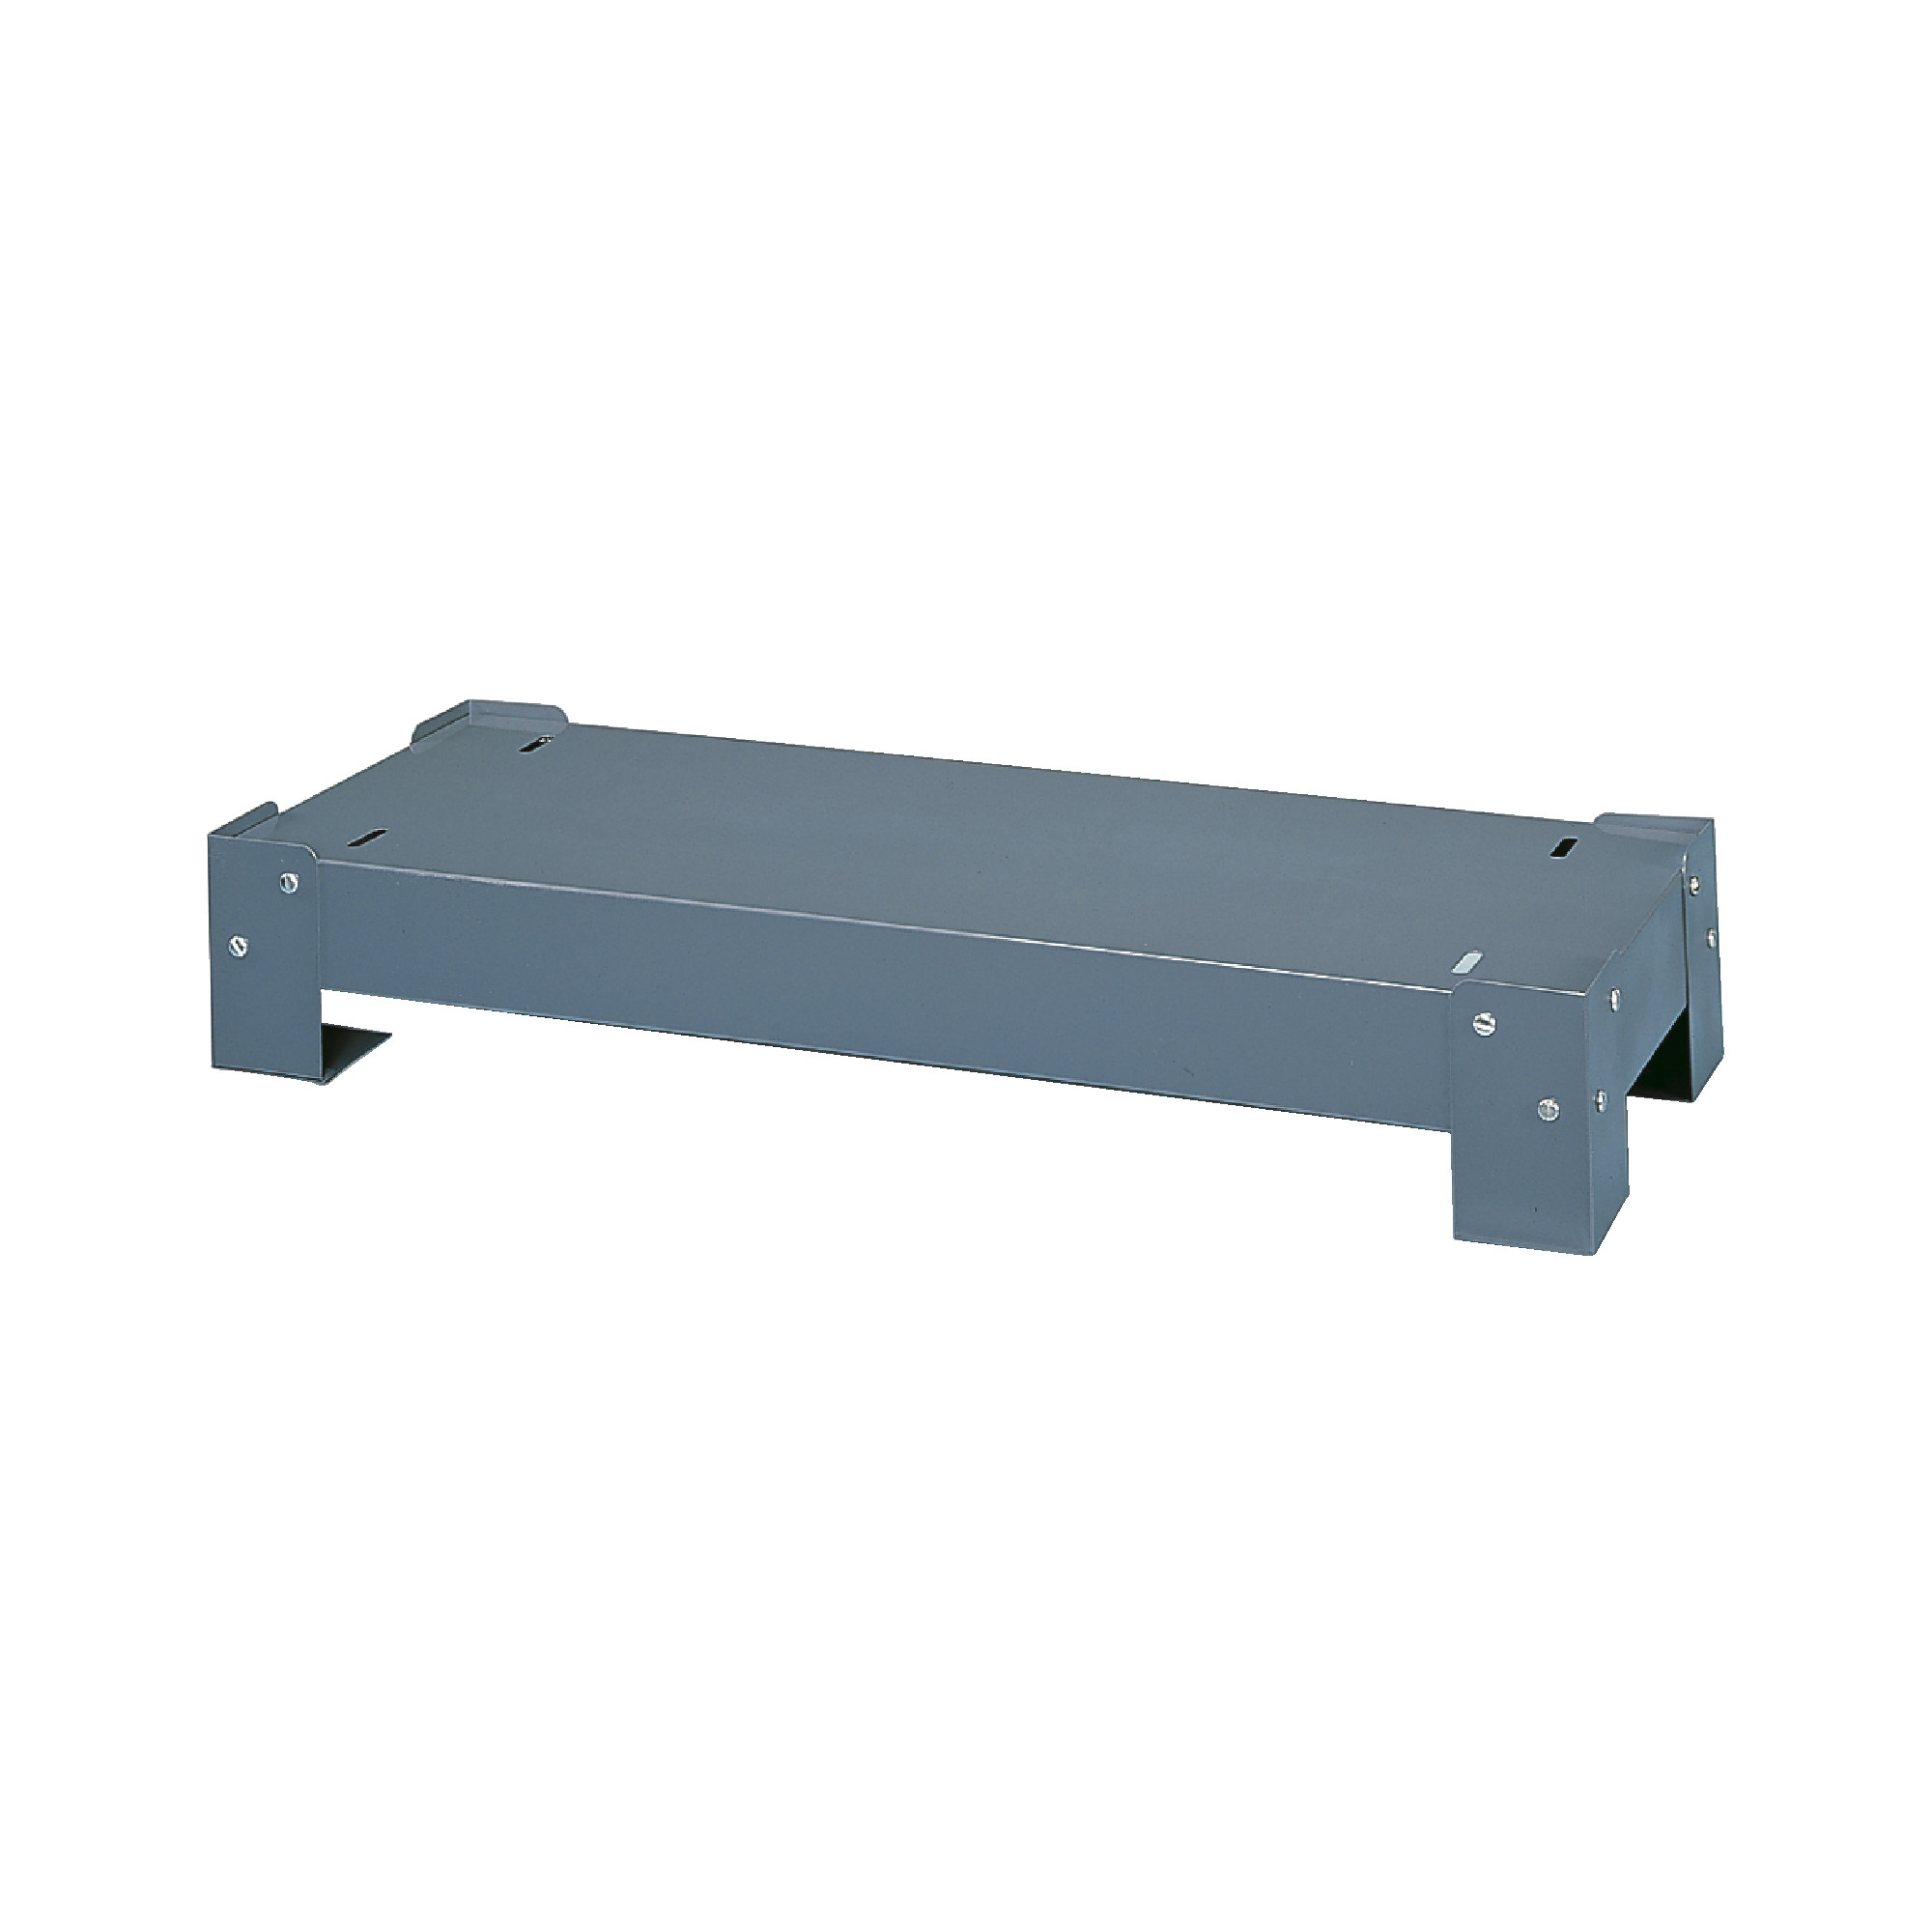 Base for Sturdy All Steel Part Bins